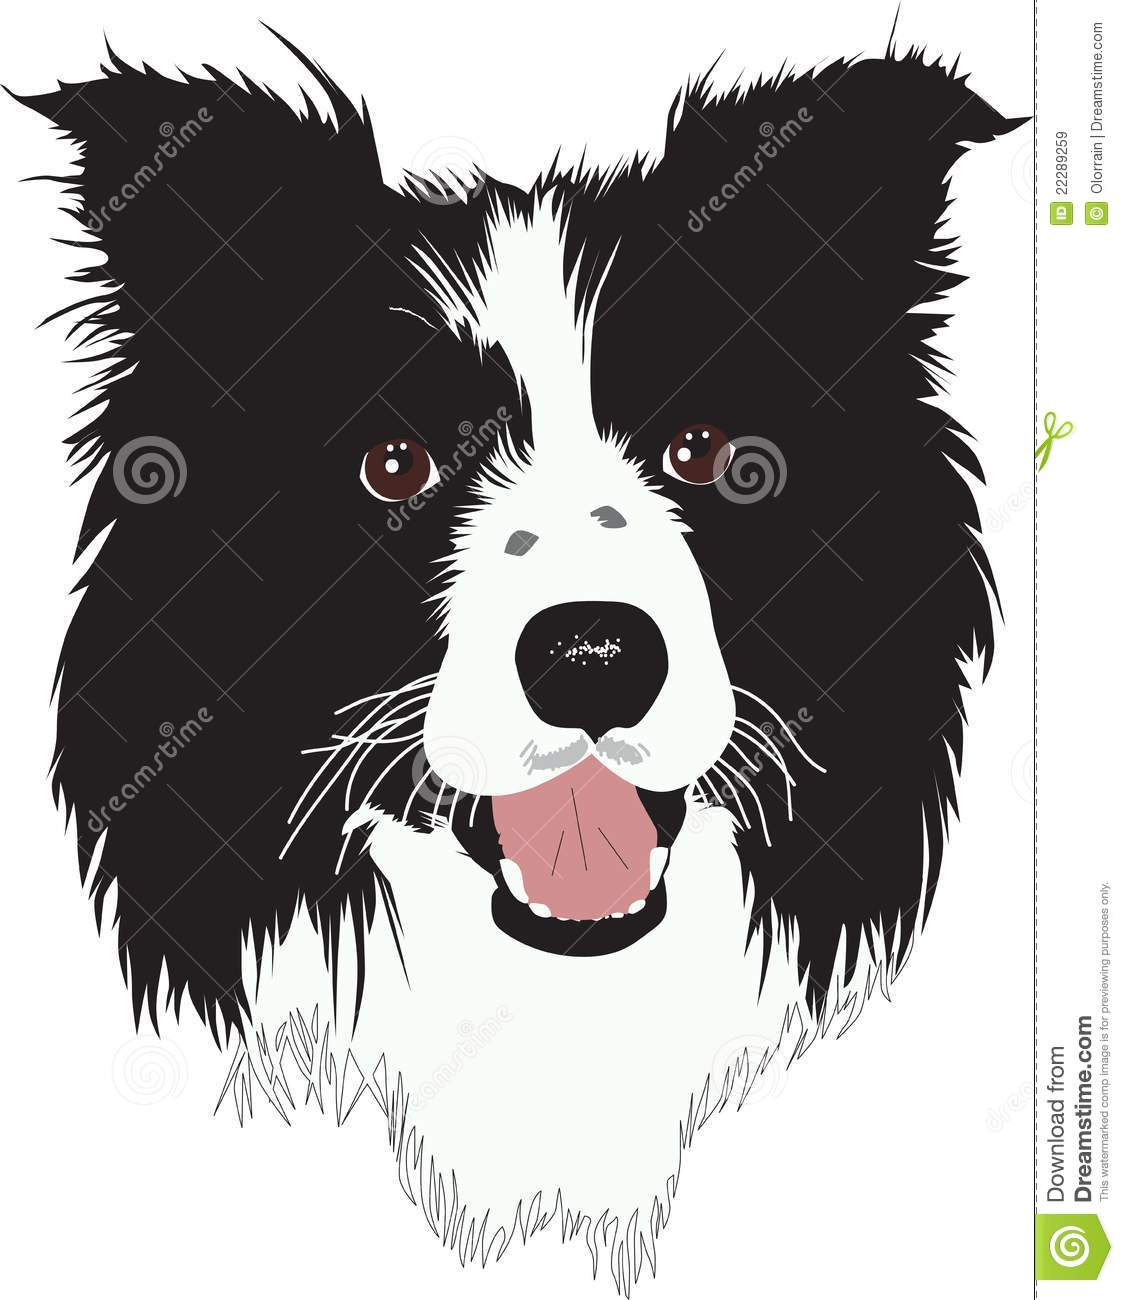 Border Collie Dog Illustration Royalty Free Stock Images Image